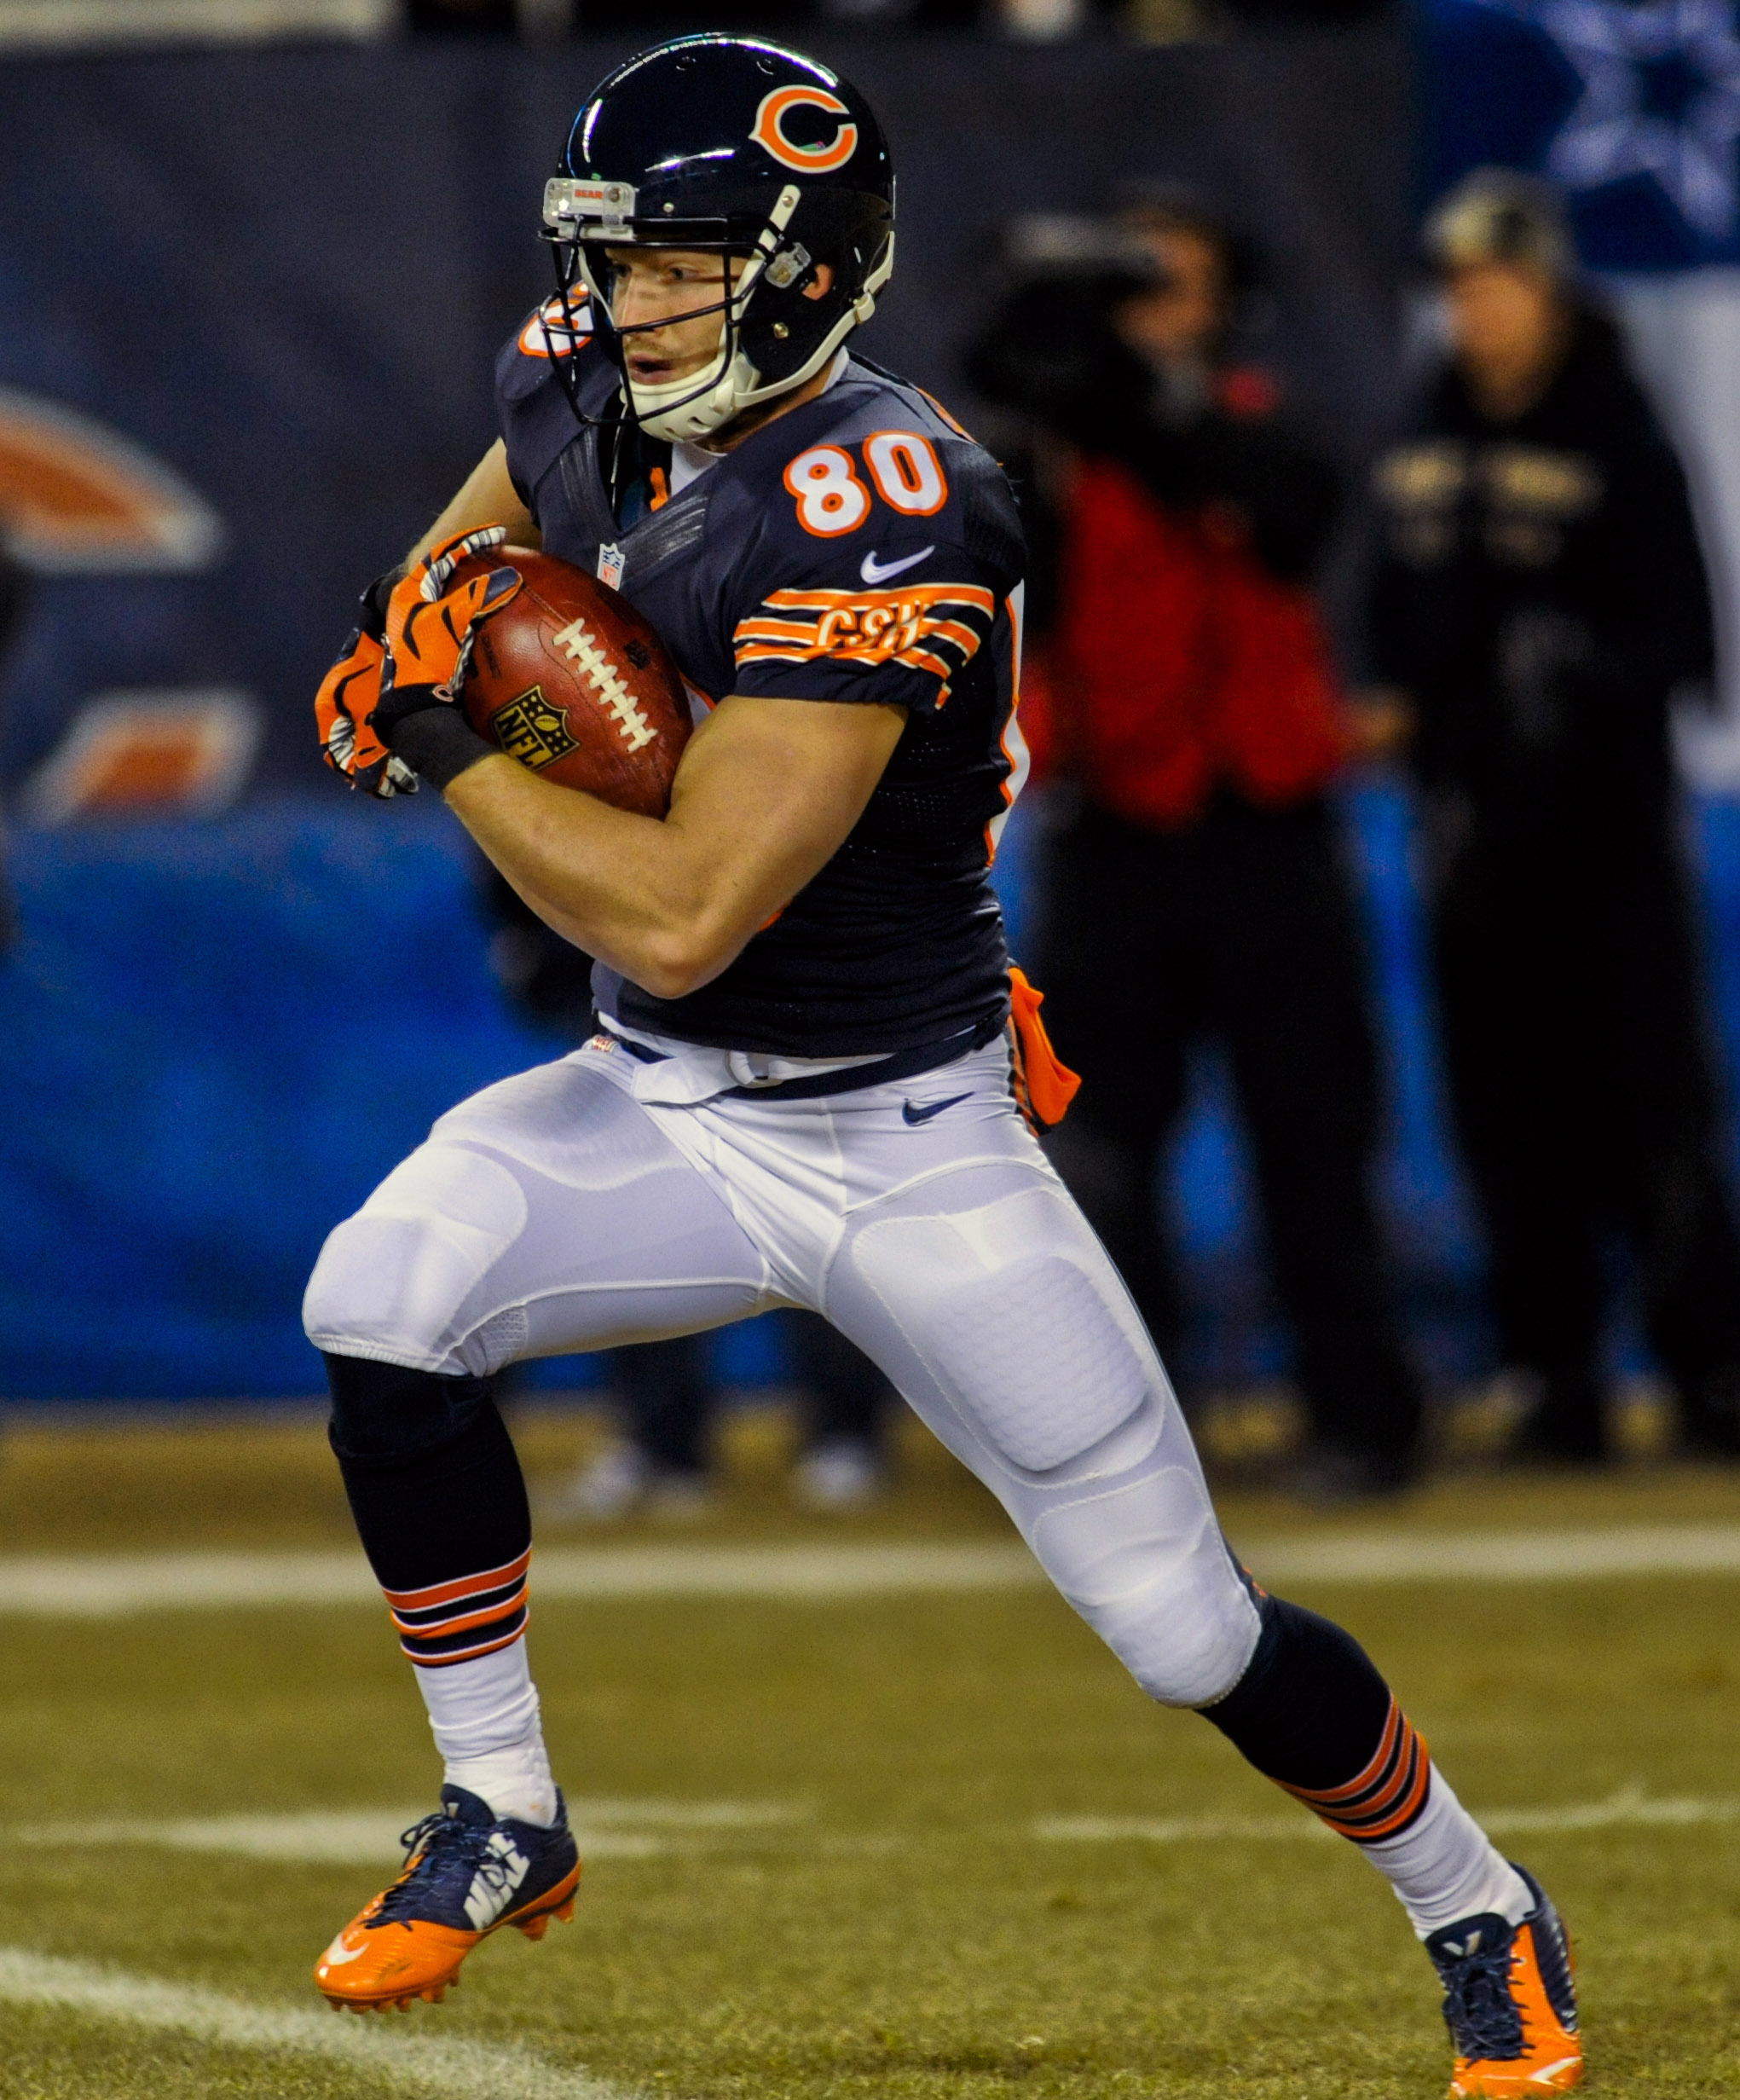 Jerseys NFL Sale - The Bears Den: December 11, 2014 - Week 15 Chicago Bears news ...